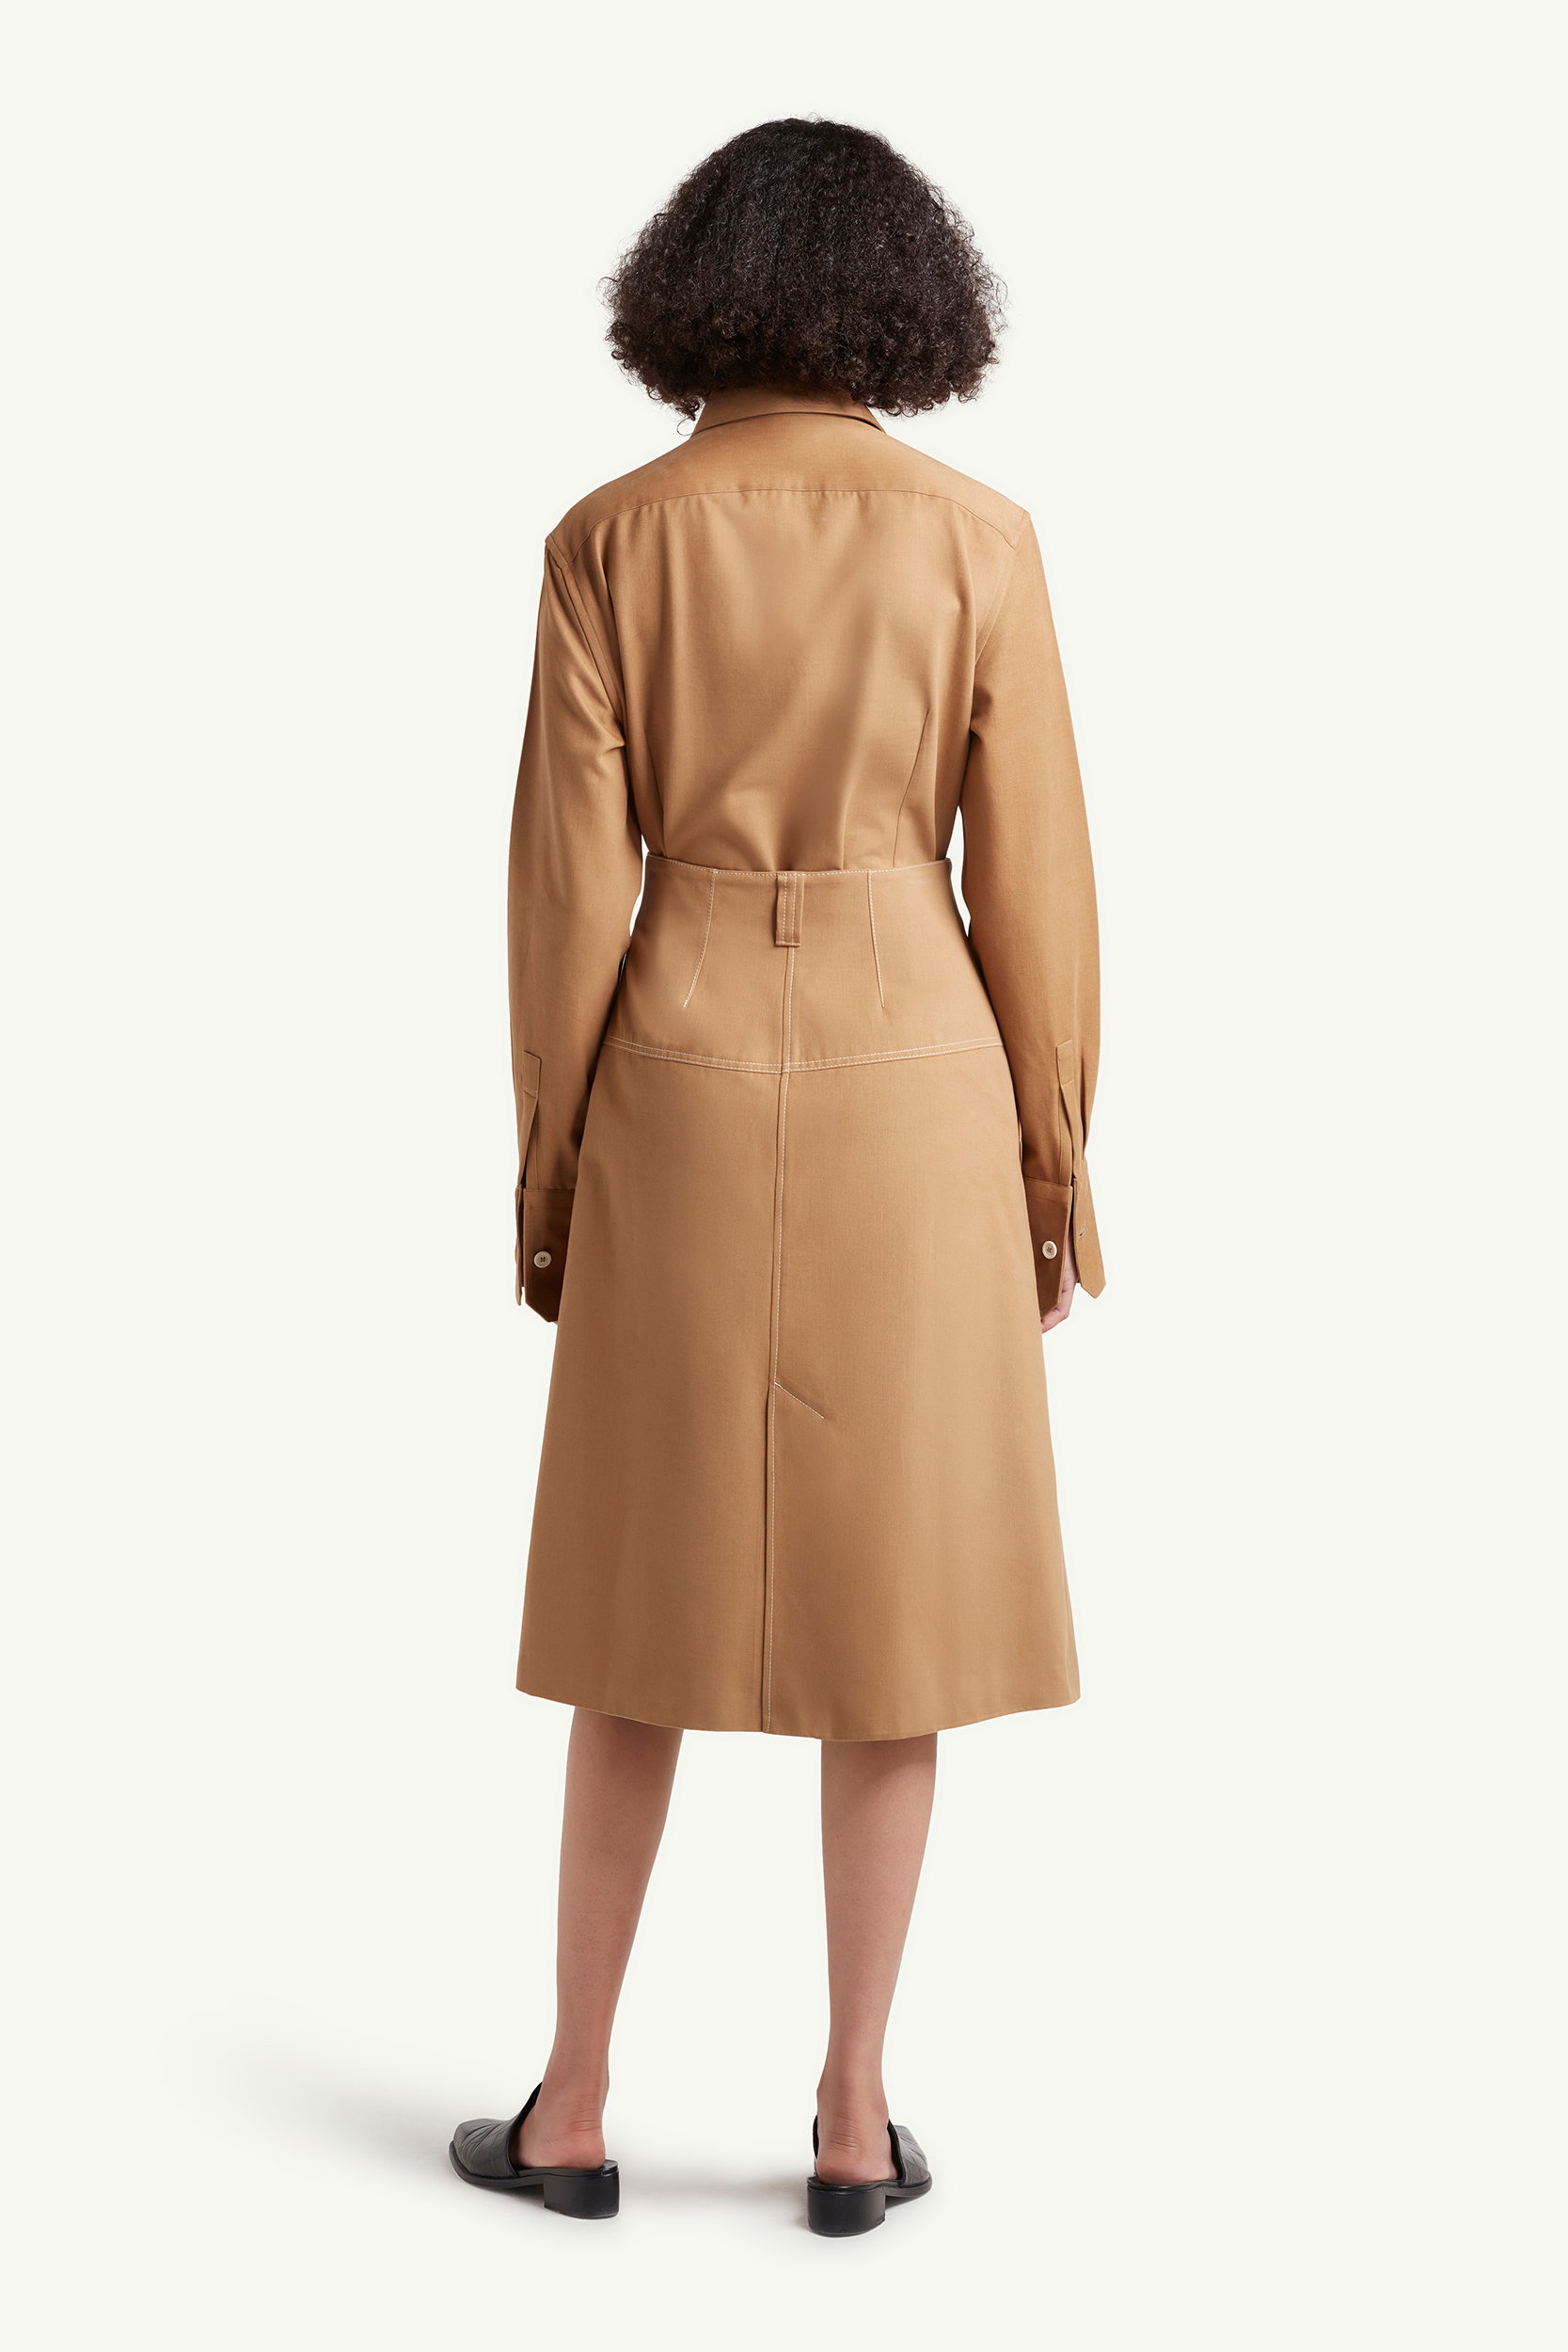 Back shot of the Womenswear model wearing light brown Wales Bonner dress with white buttons | e-Commerce Photography London | LRP